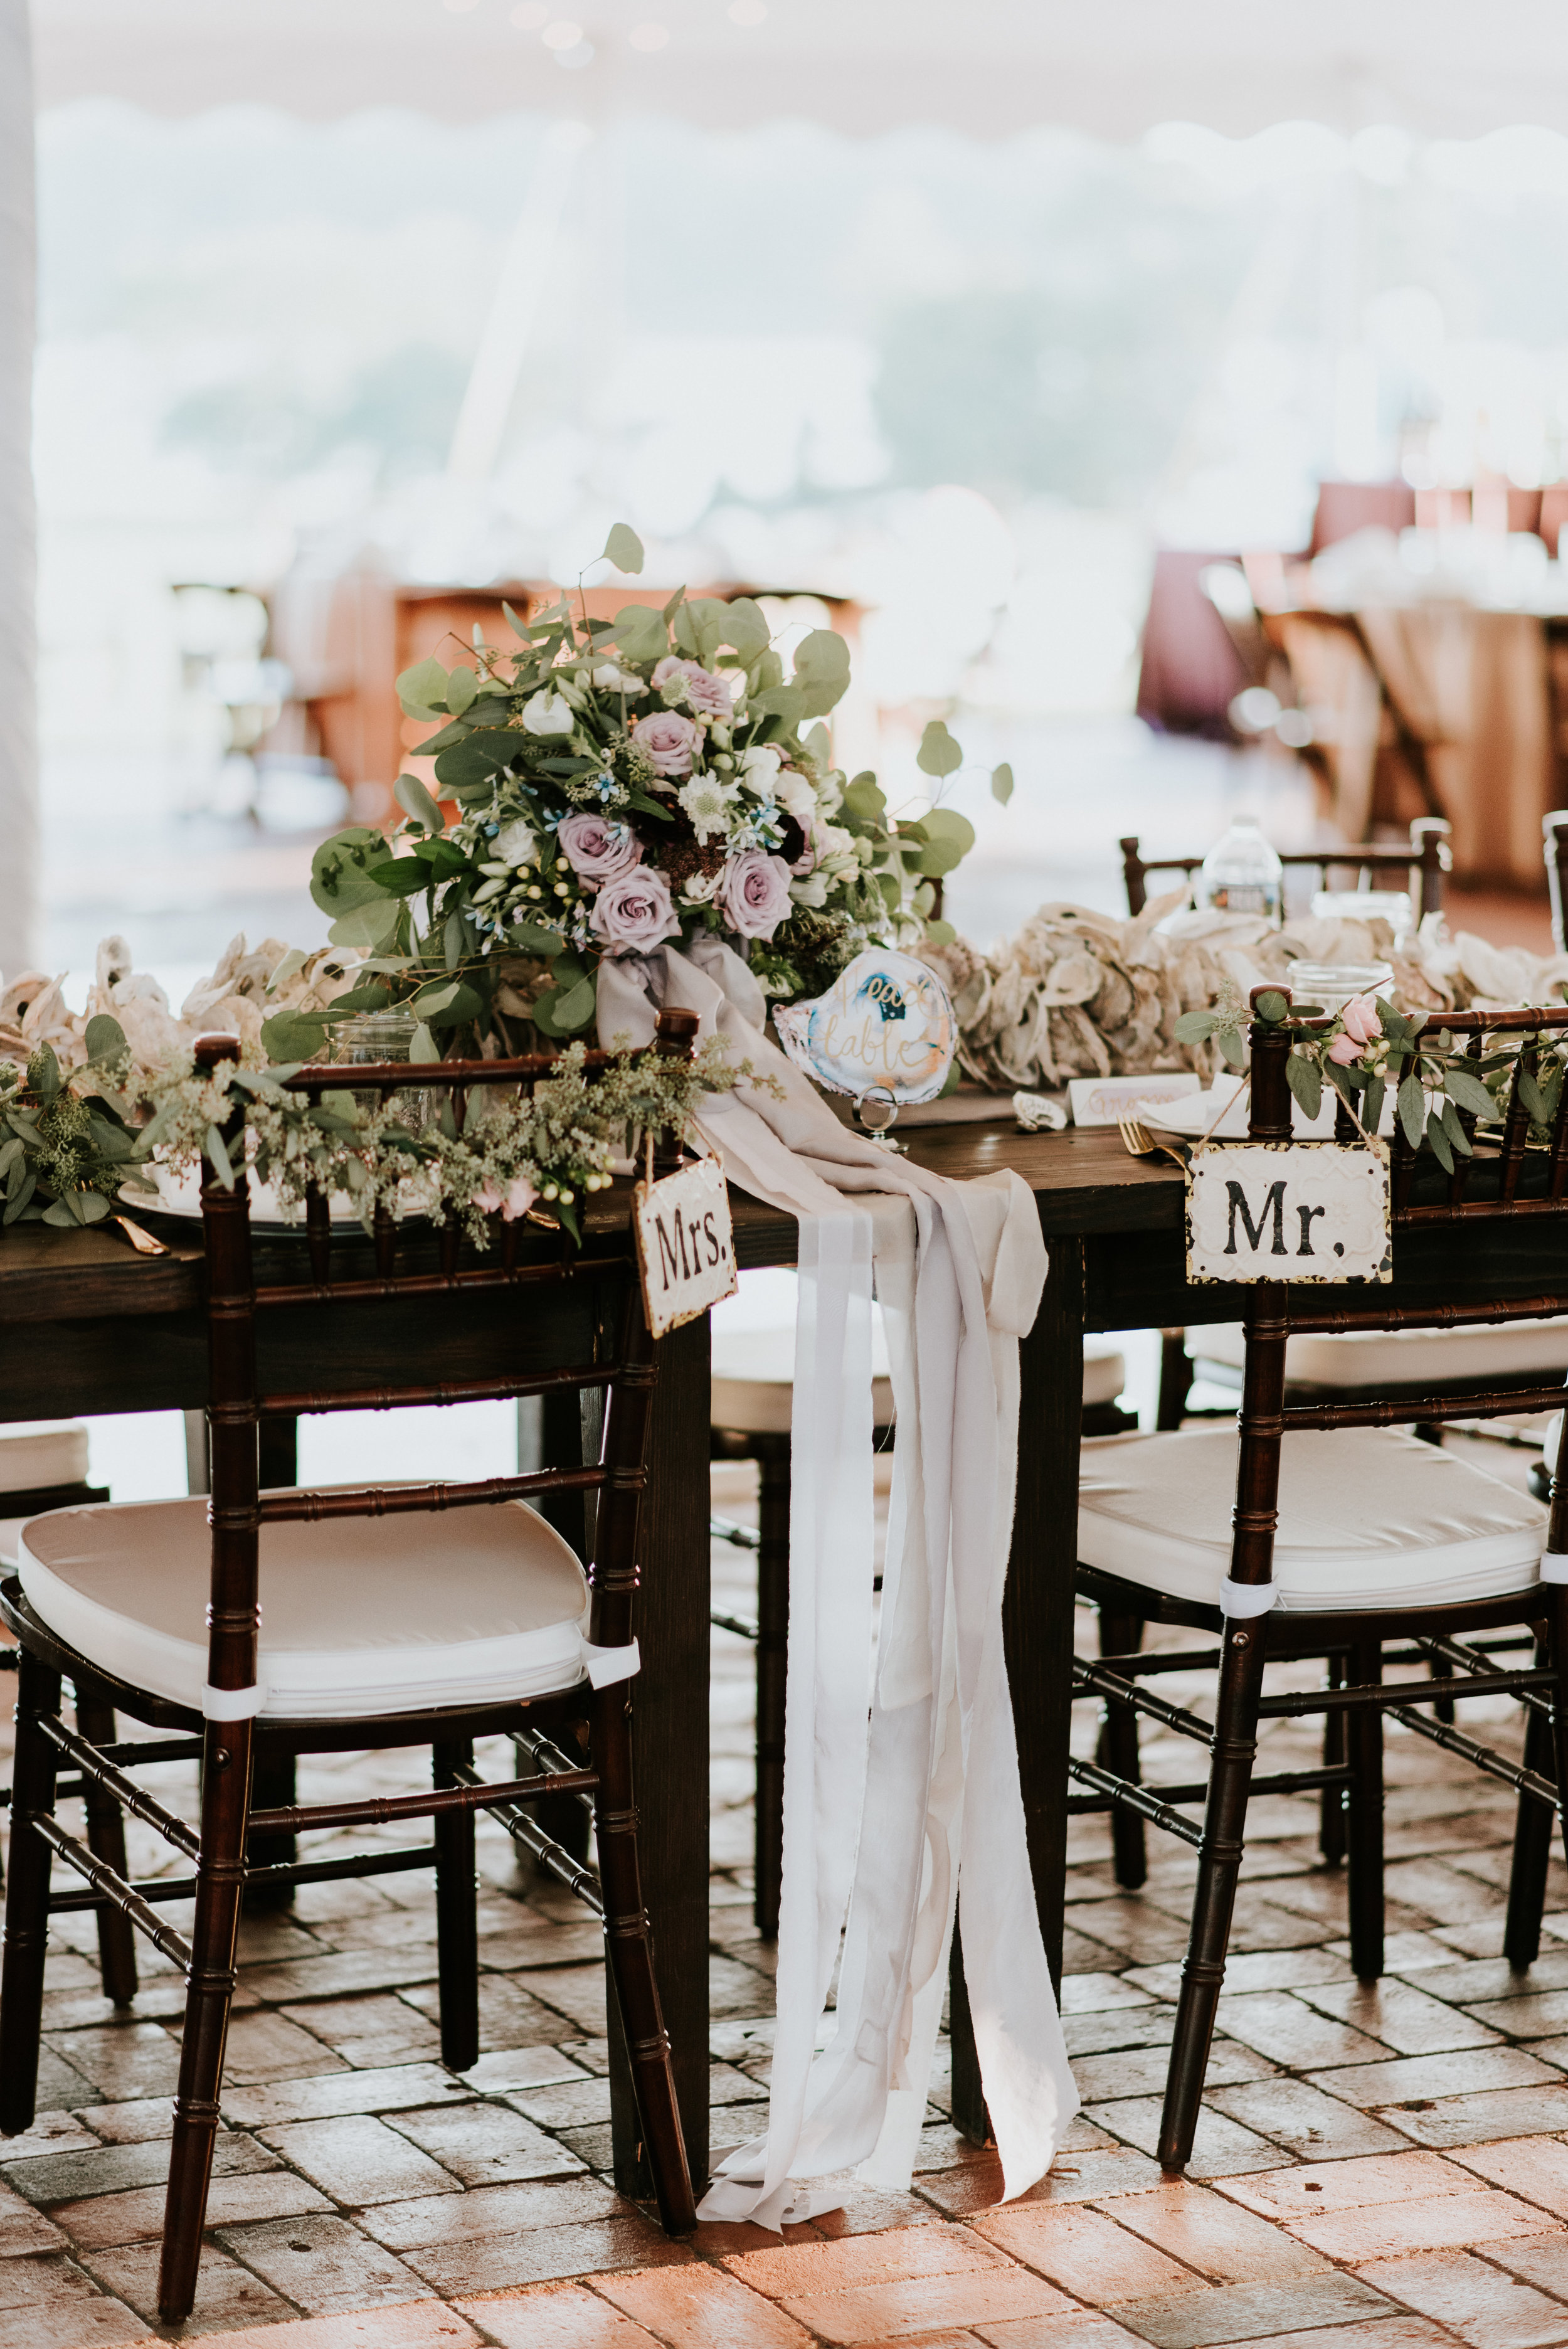 Rustic Oyster Themed Eastern Shore Maryland Outdoor Wedding by East Made Event Company Wedding Planner and Bekah Kay Creative982.jpg